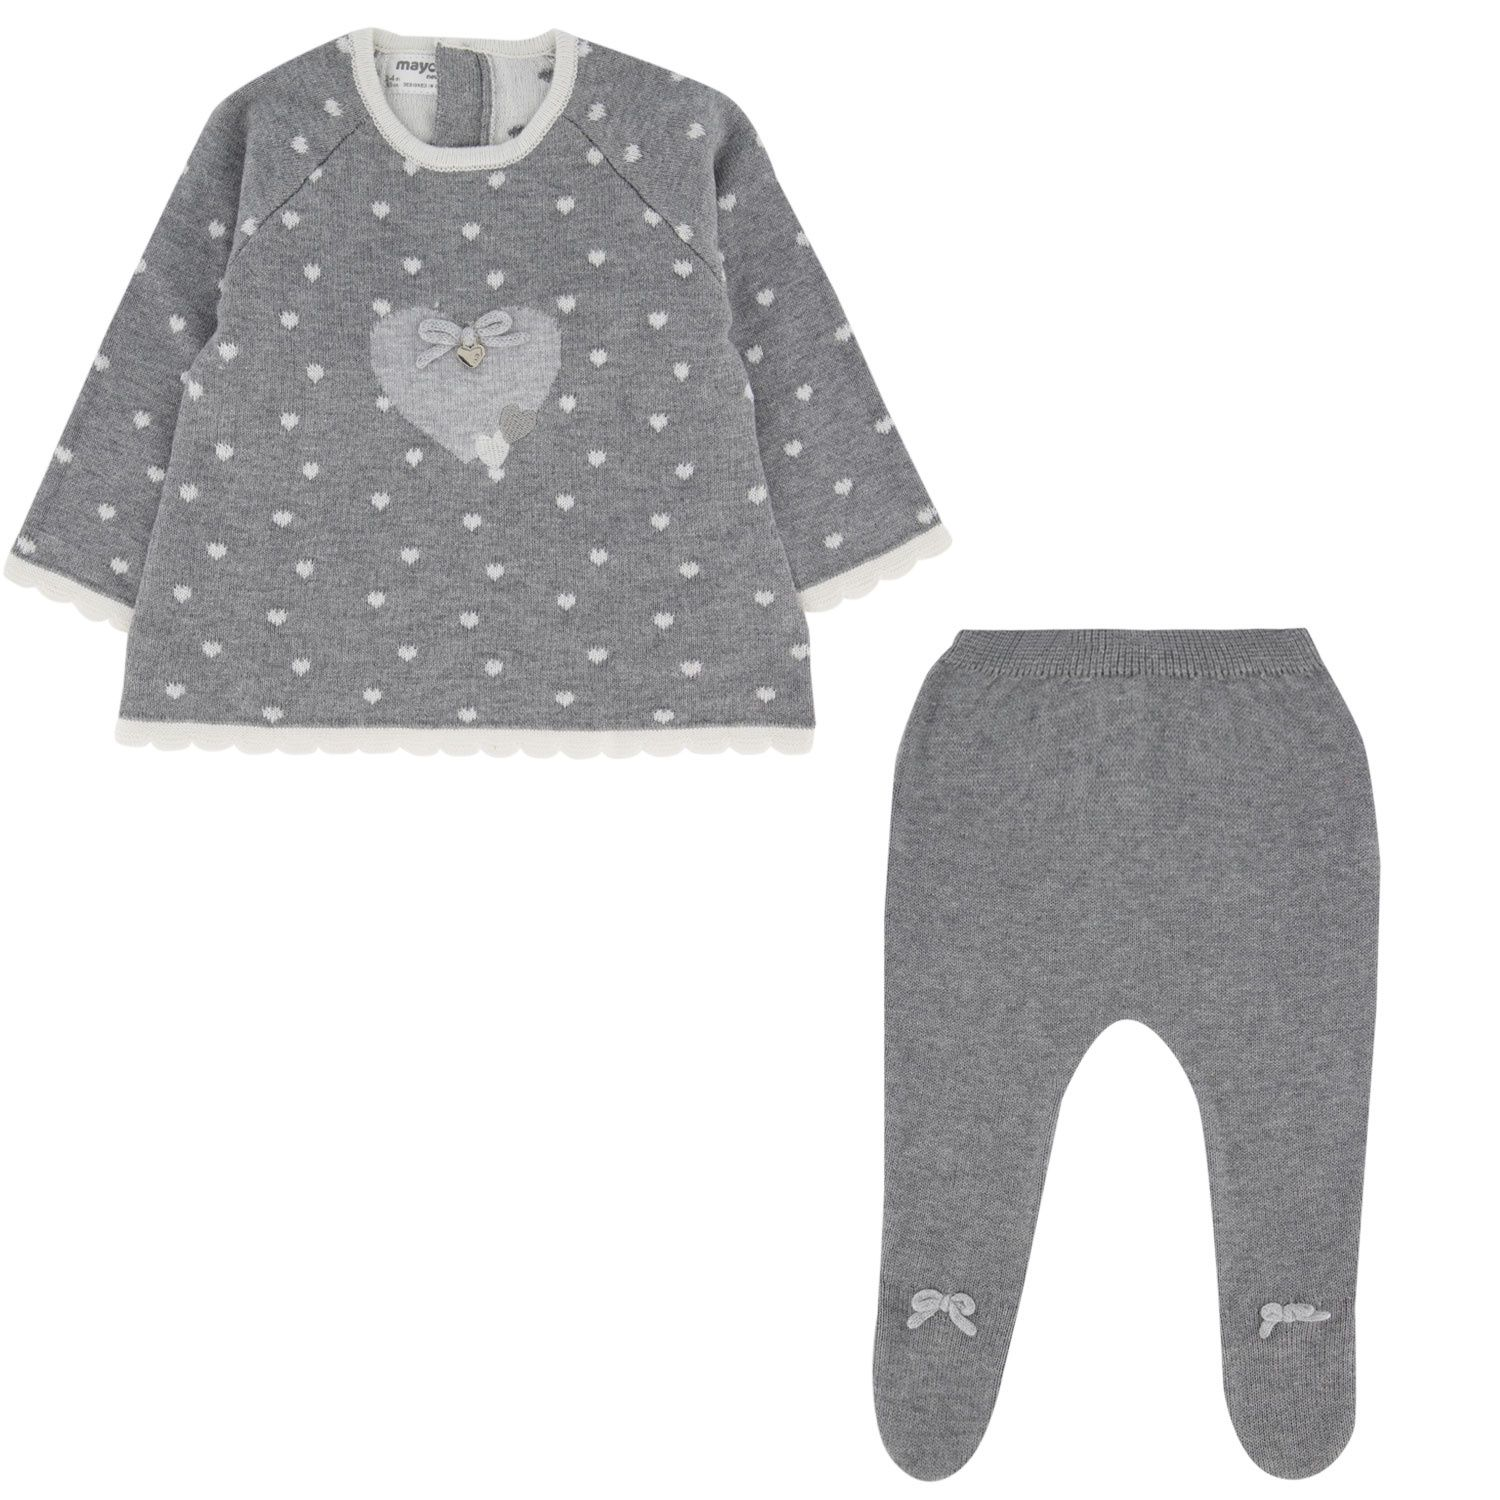 Picture of Mayoral 2547 baby set grey